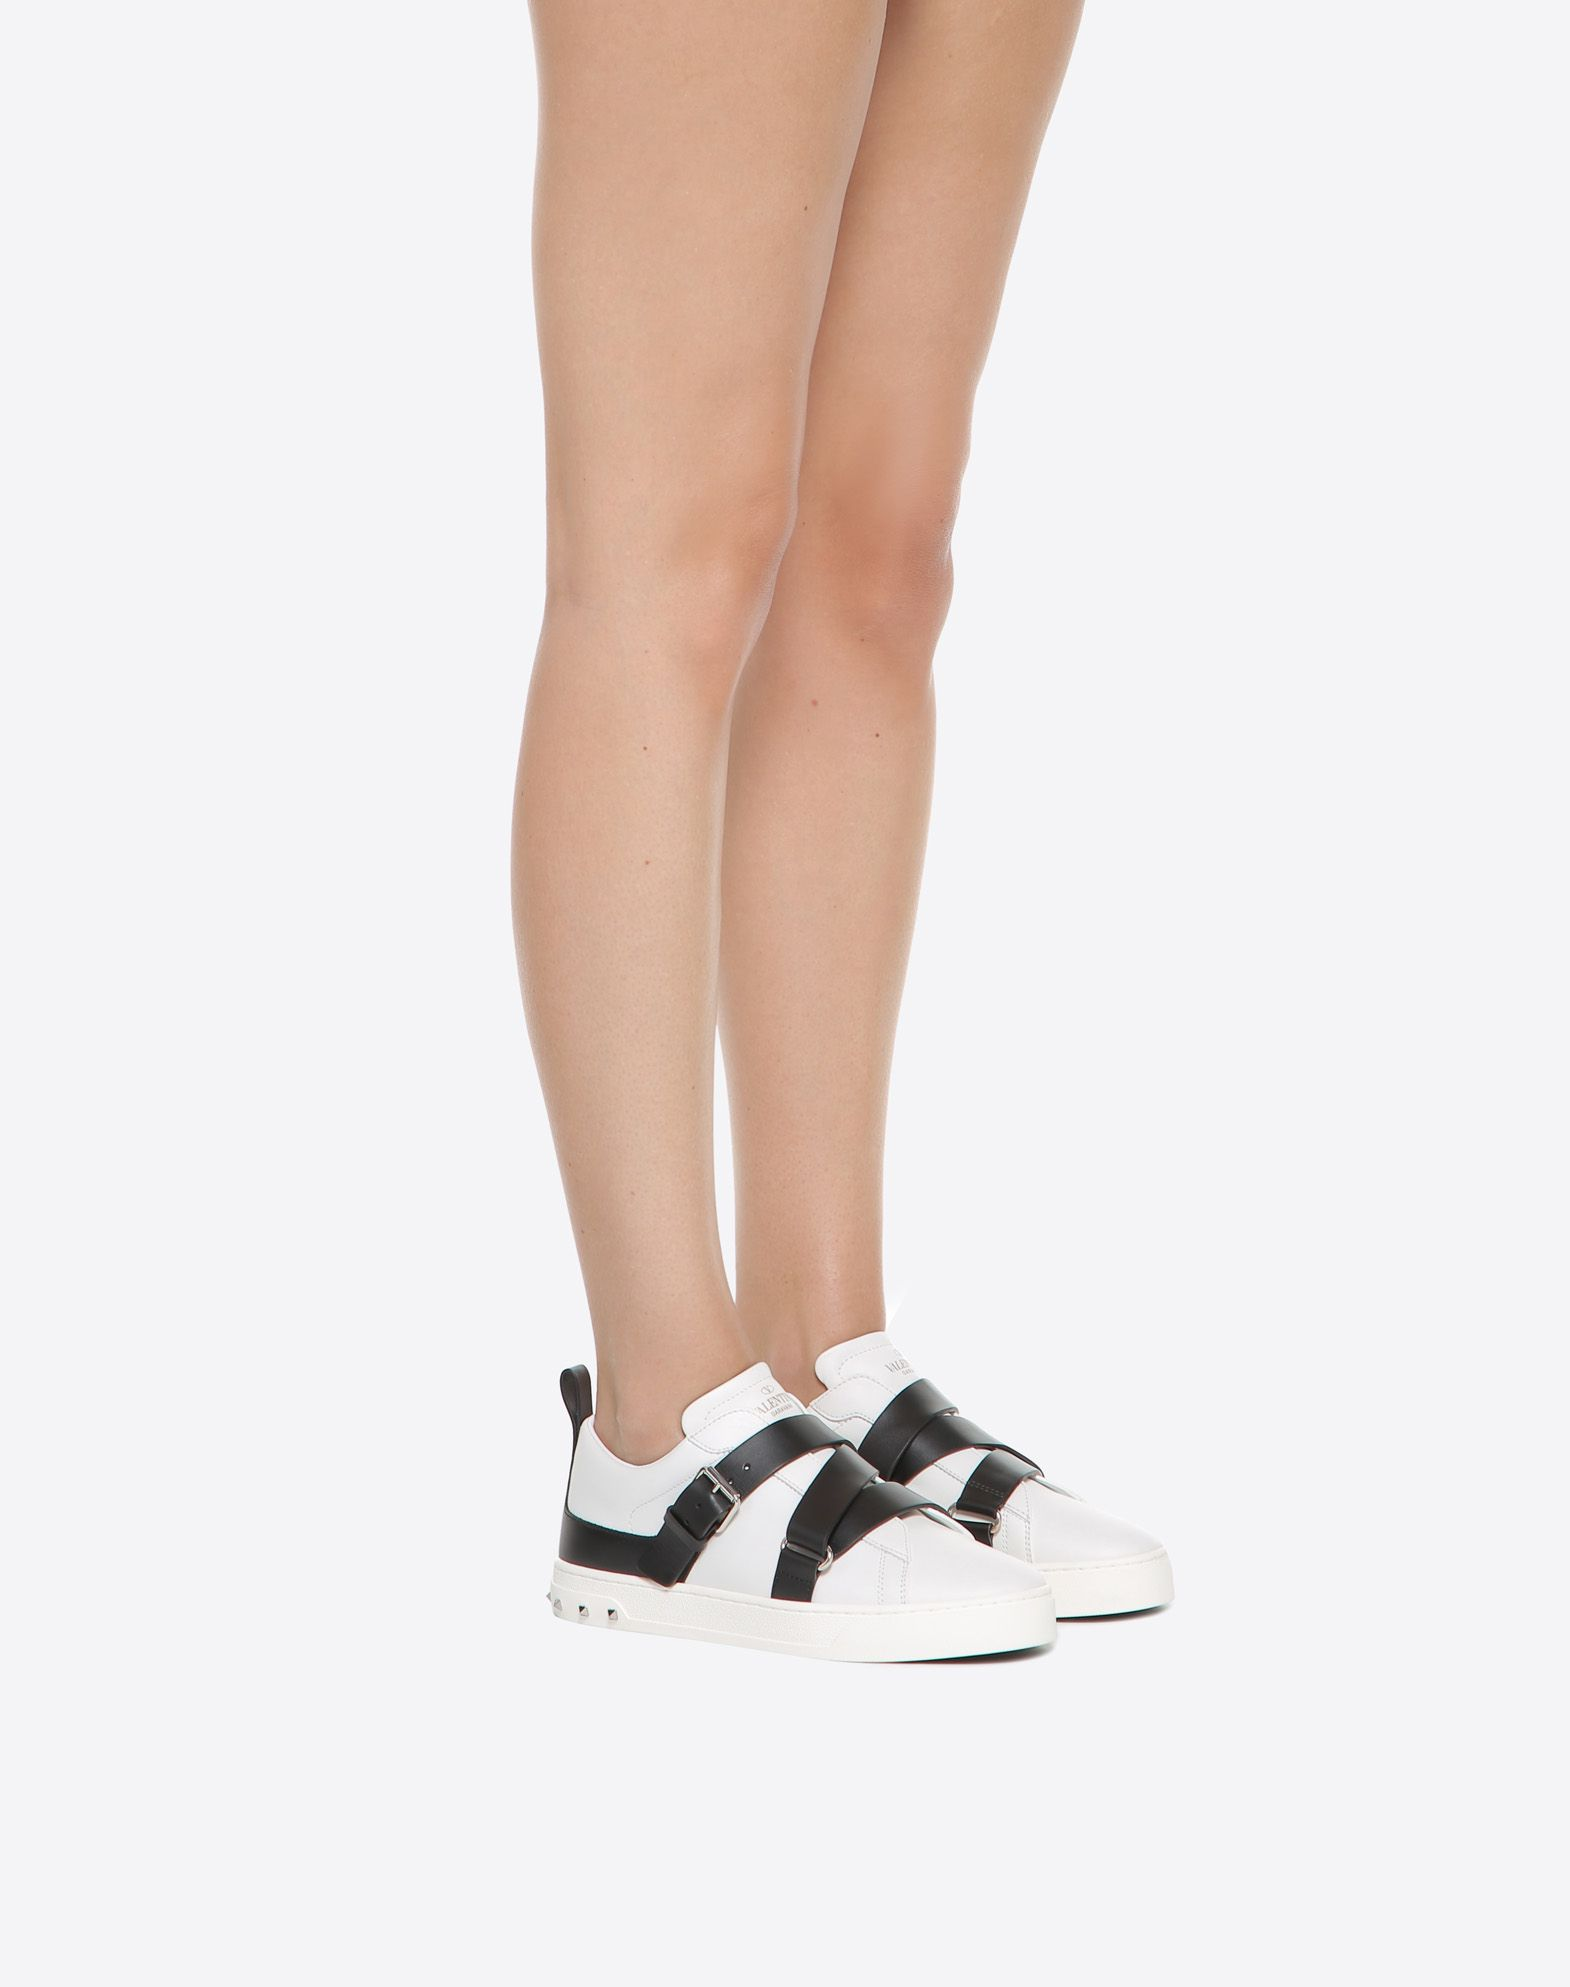 Buy Cheap Huge Surprise Brand New Unisex Cheap Price White and Black Valentino Garavani V Punk Sneakers Valentino Sale New Styles Sale Fake kQoPC4W